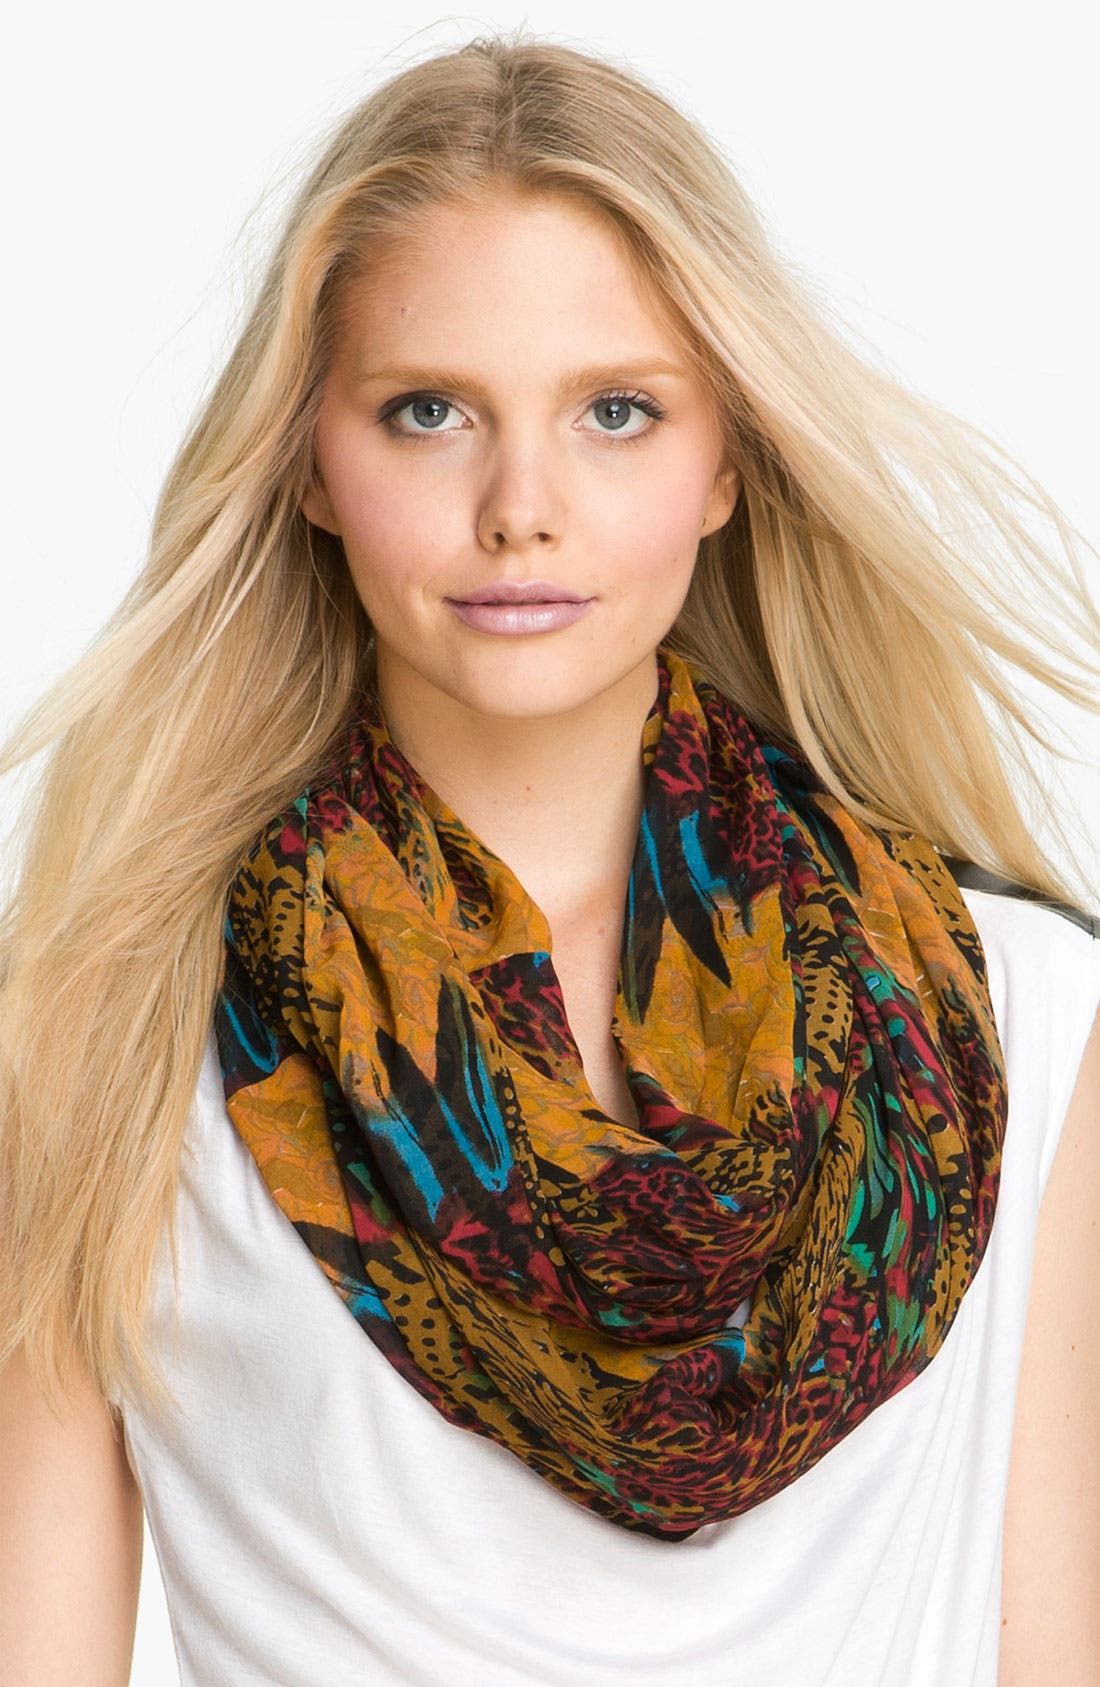 Alternate Image 1 Selected - Collection XIIX 'Swirling Animal' Infinity Scarf